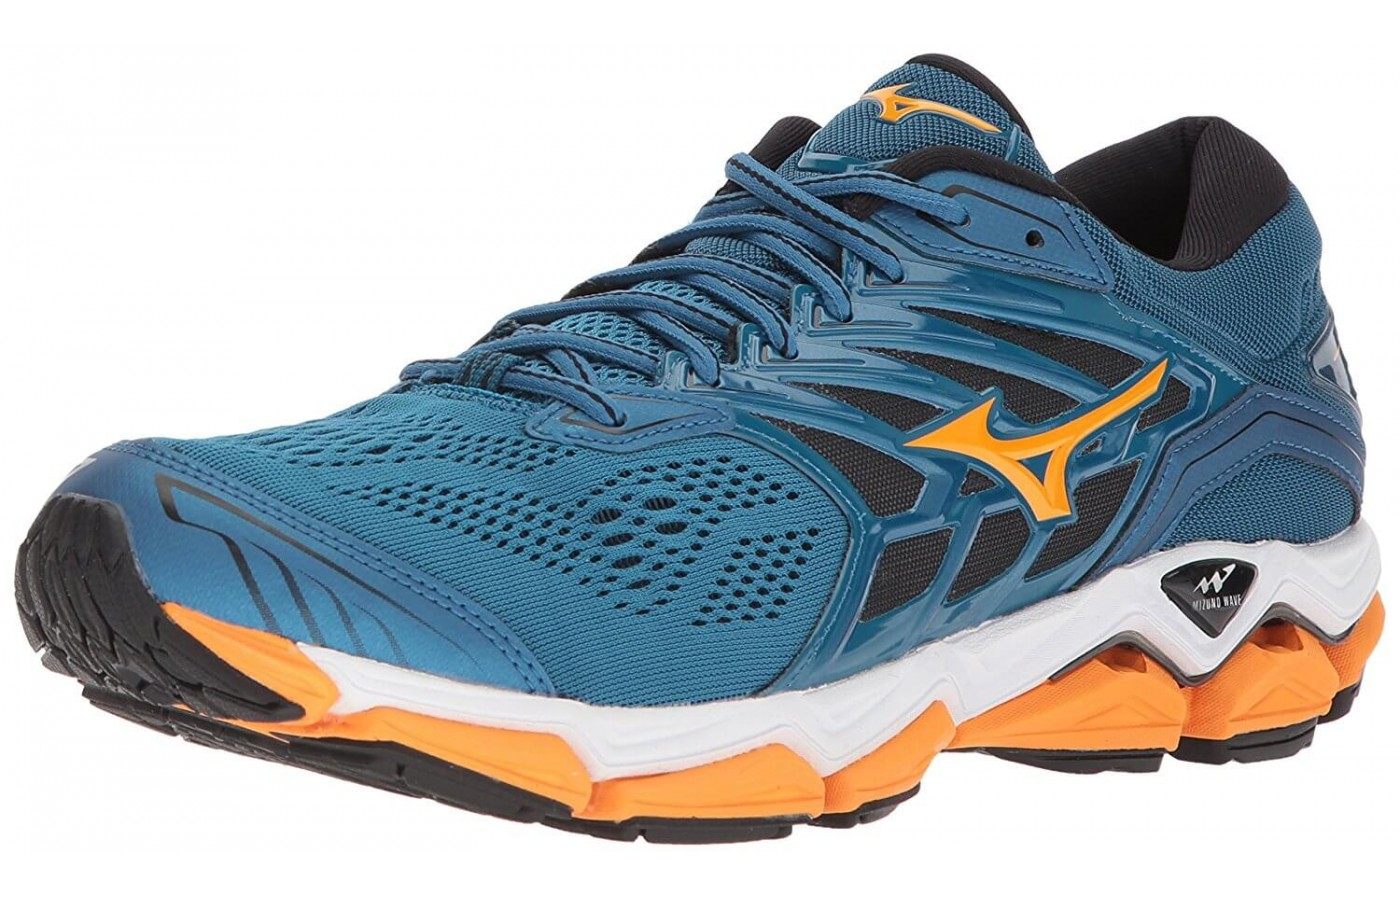 The Mizuno Wave Horizon 2 has a DynamotionFit upper